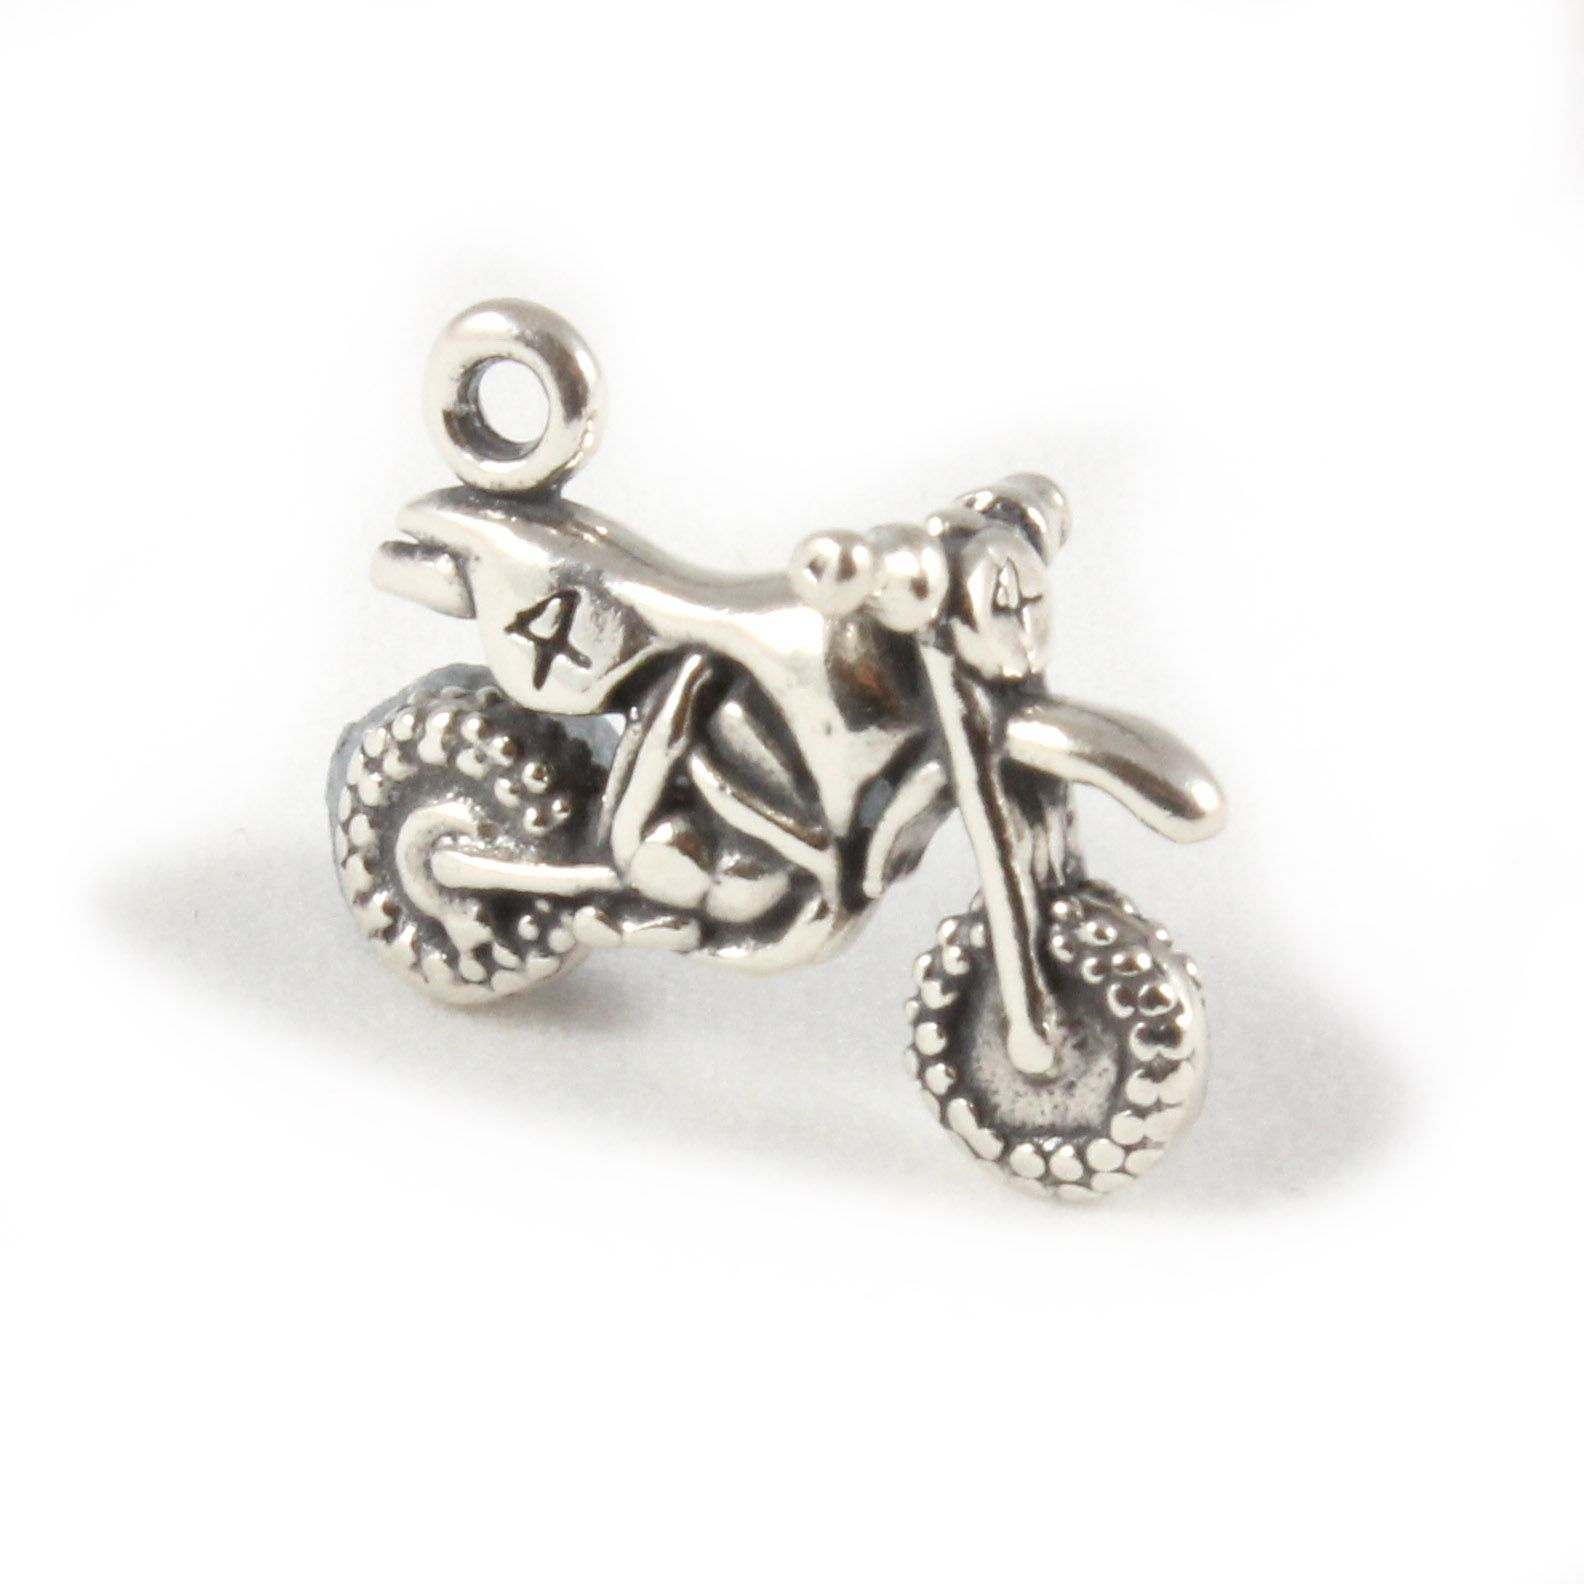 Charm School Uk Gt Sterling Silver Charms Gt Transport